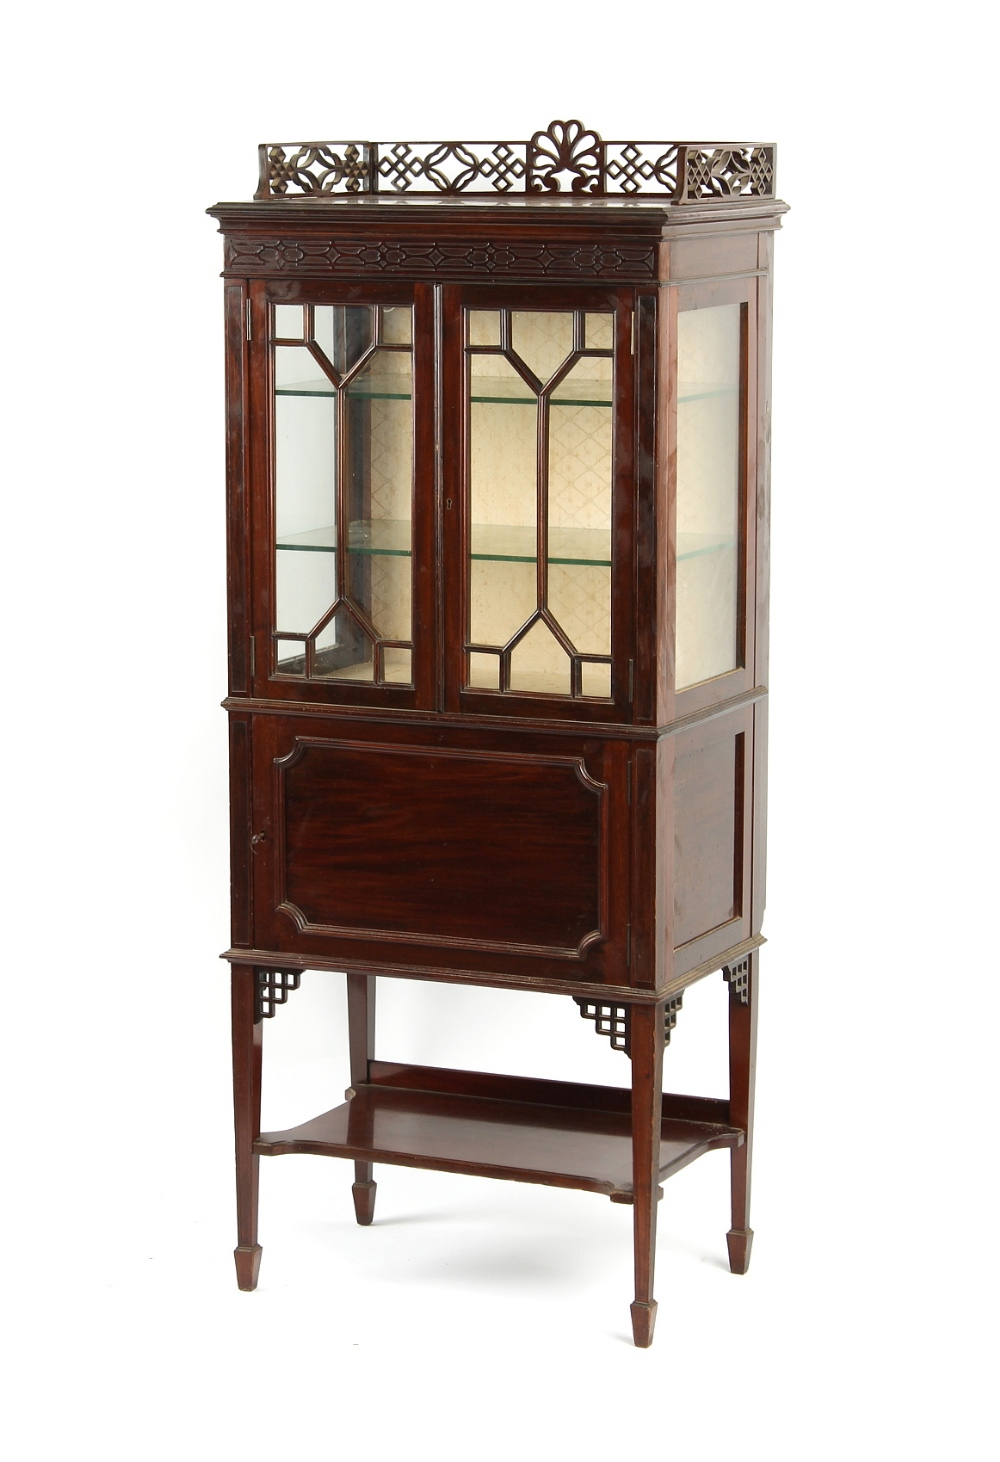 Property of a deceased estate - an Edwardian mahogany china display cabinet with blind fretwork